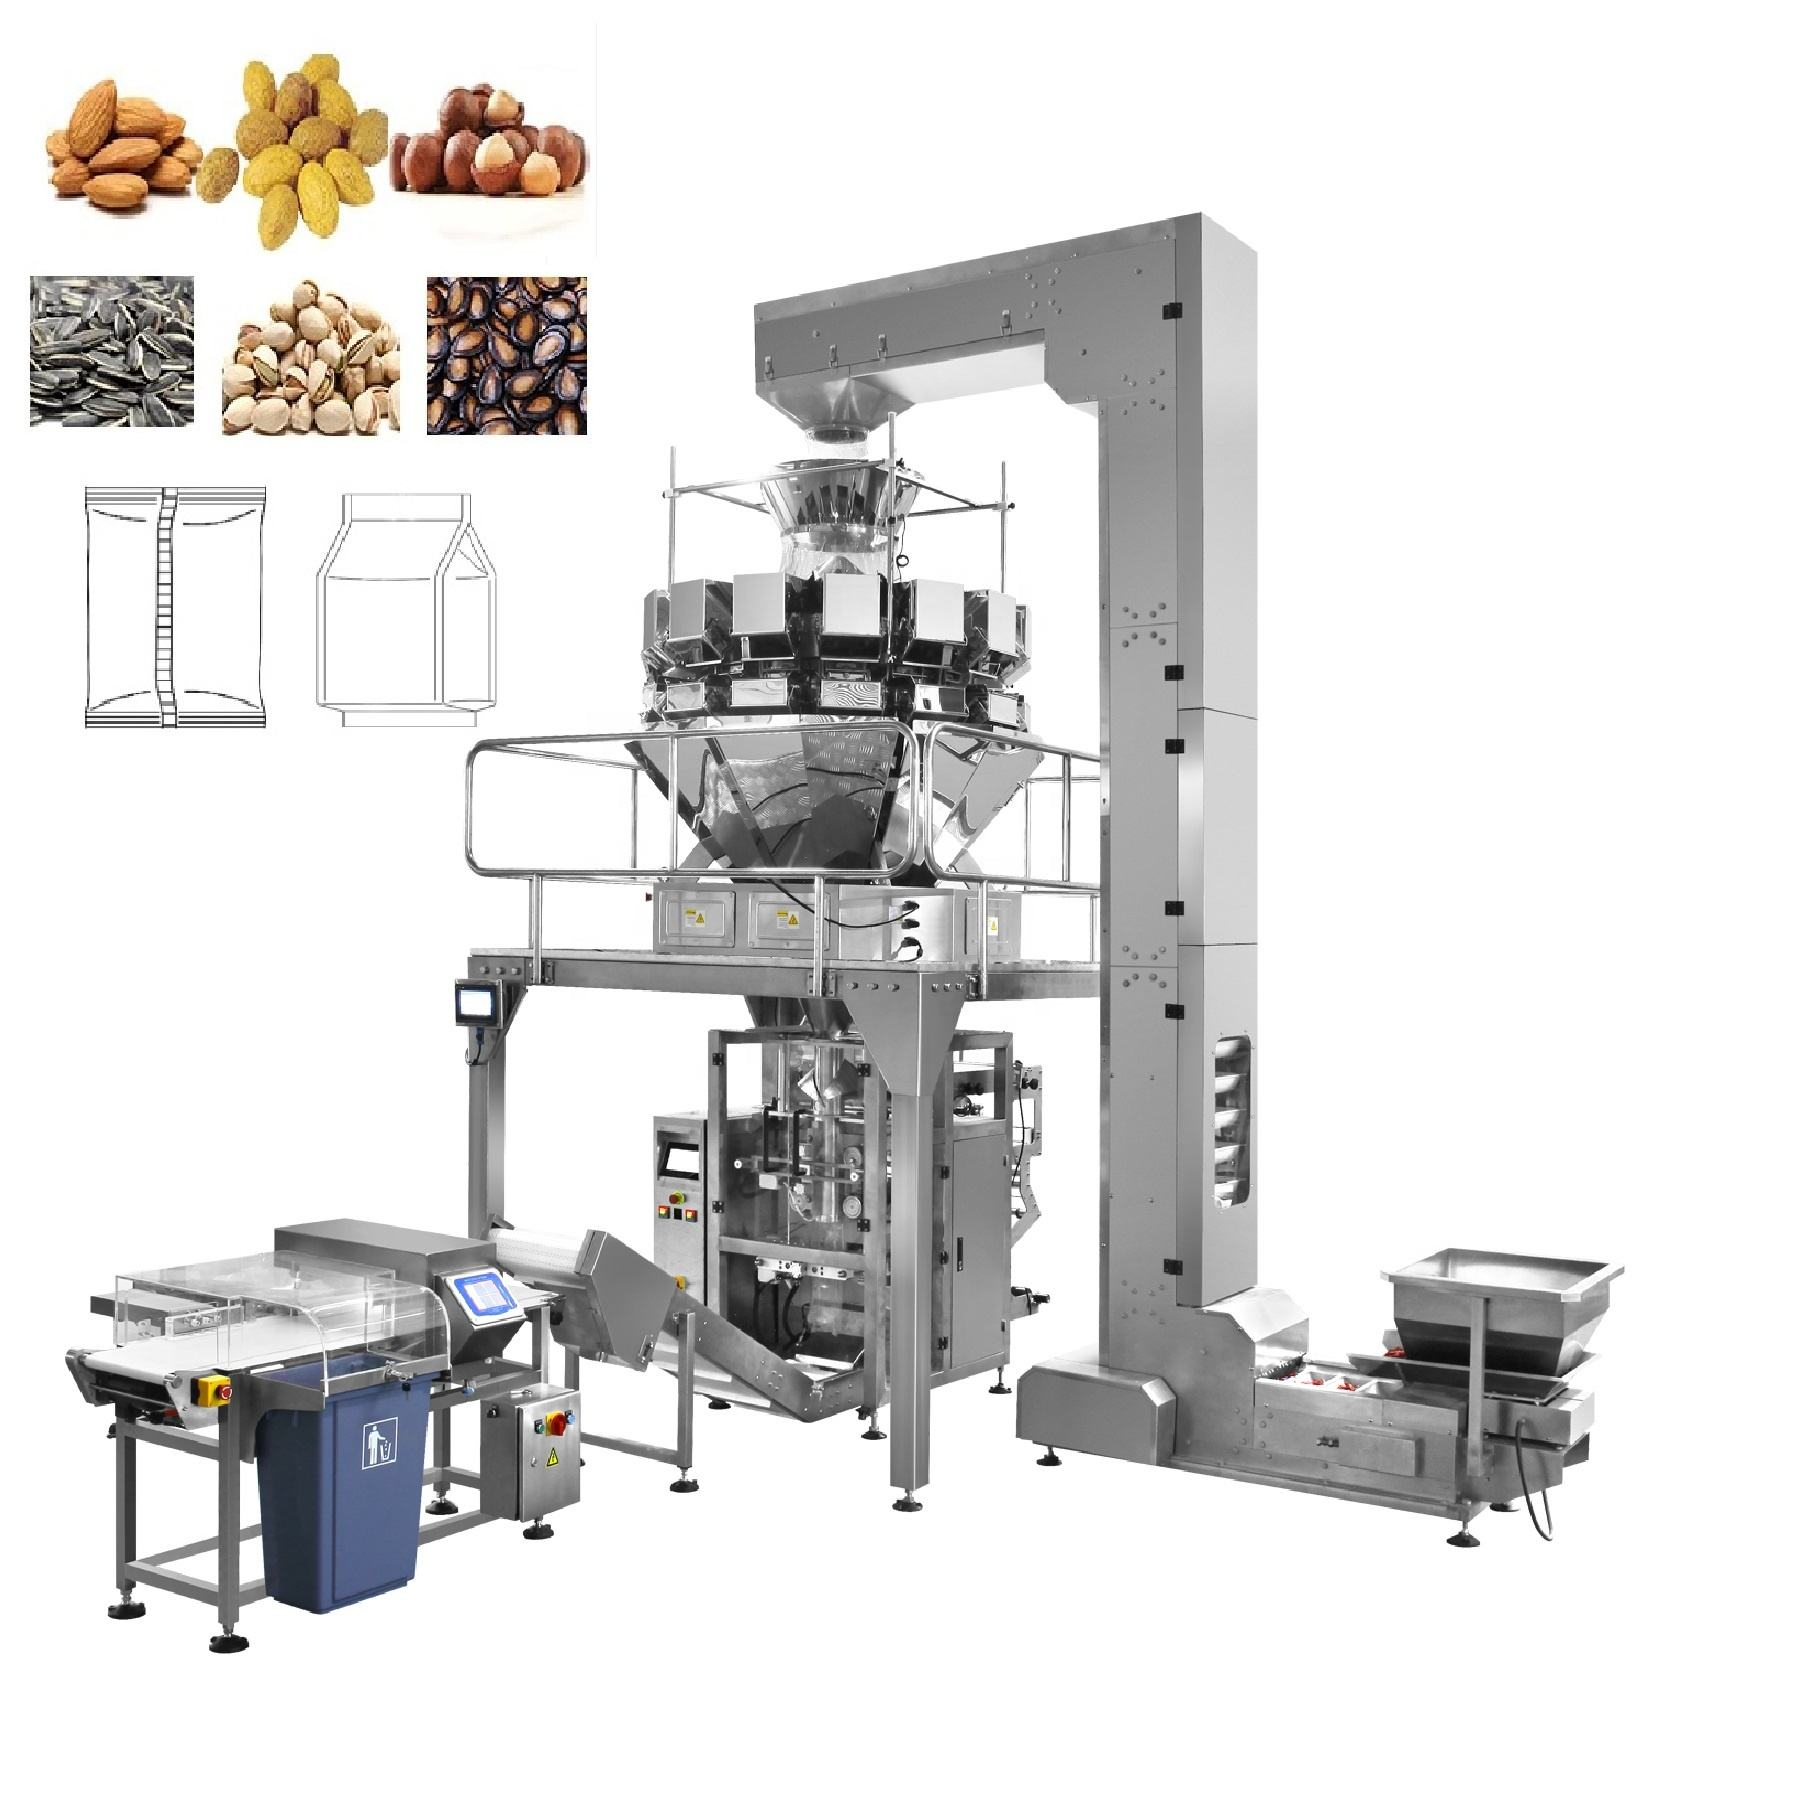 Chips de banane machine d'emballage/légumes/machine à emballer de haricots